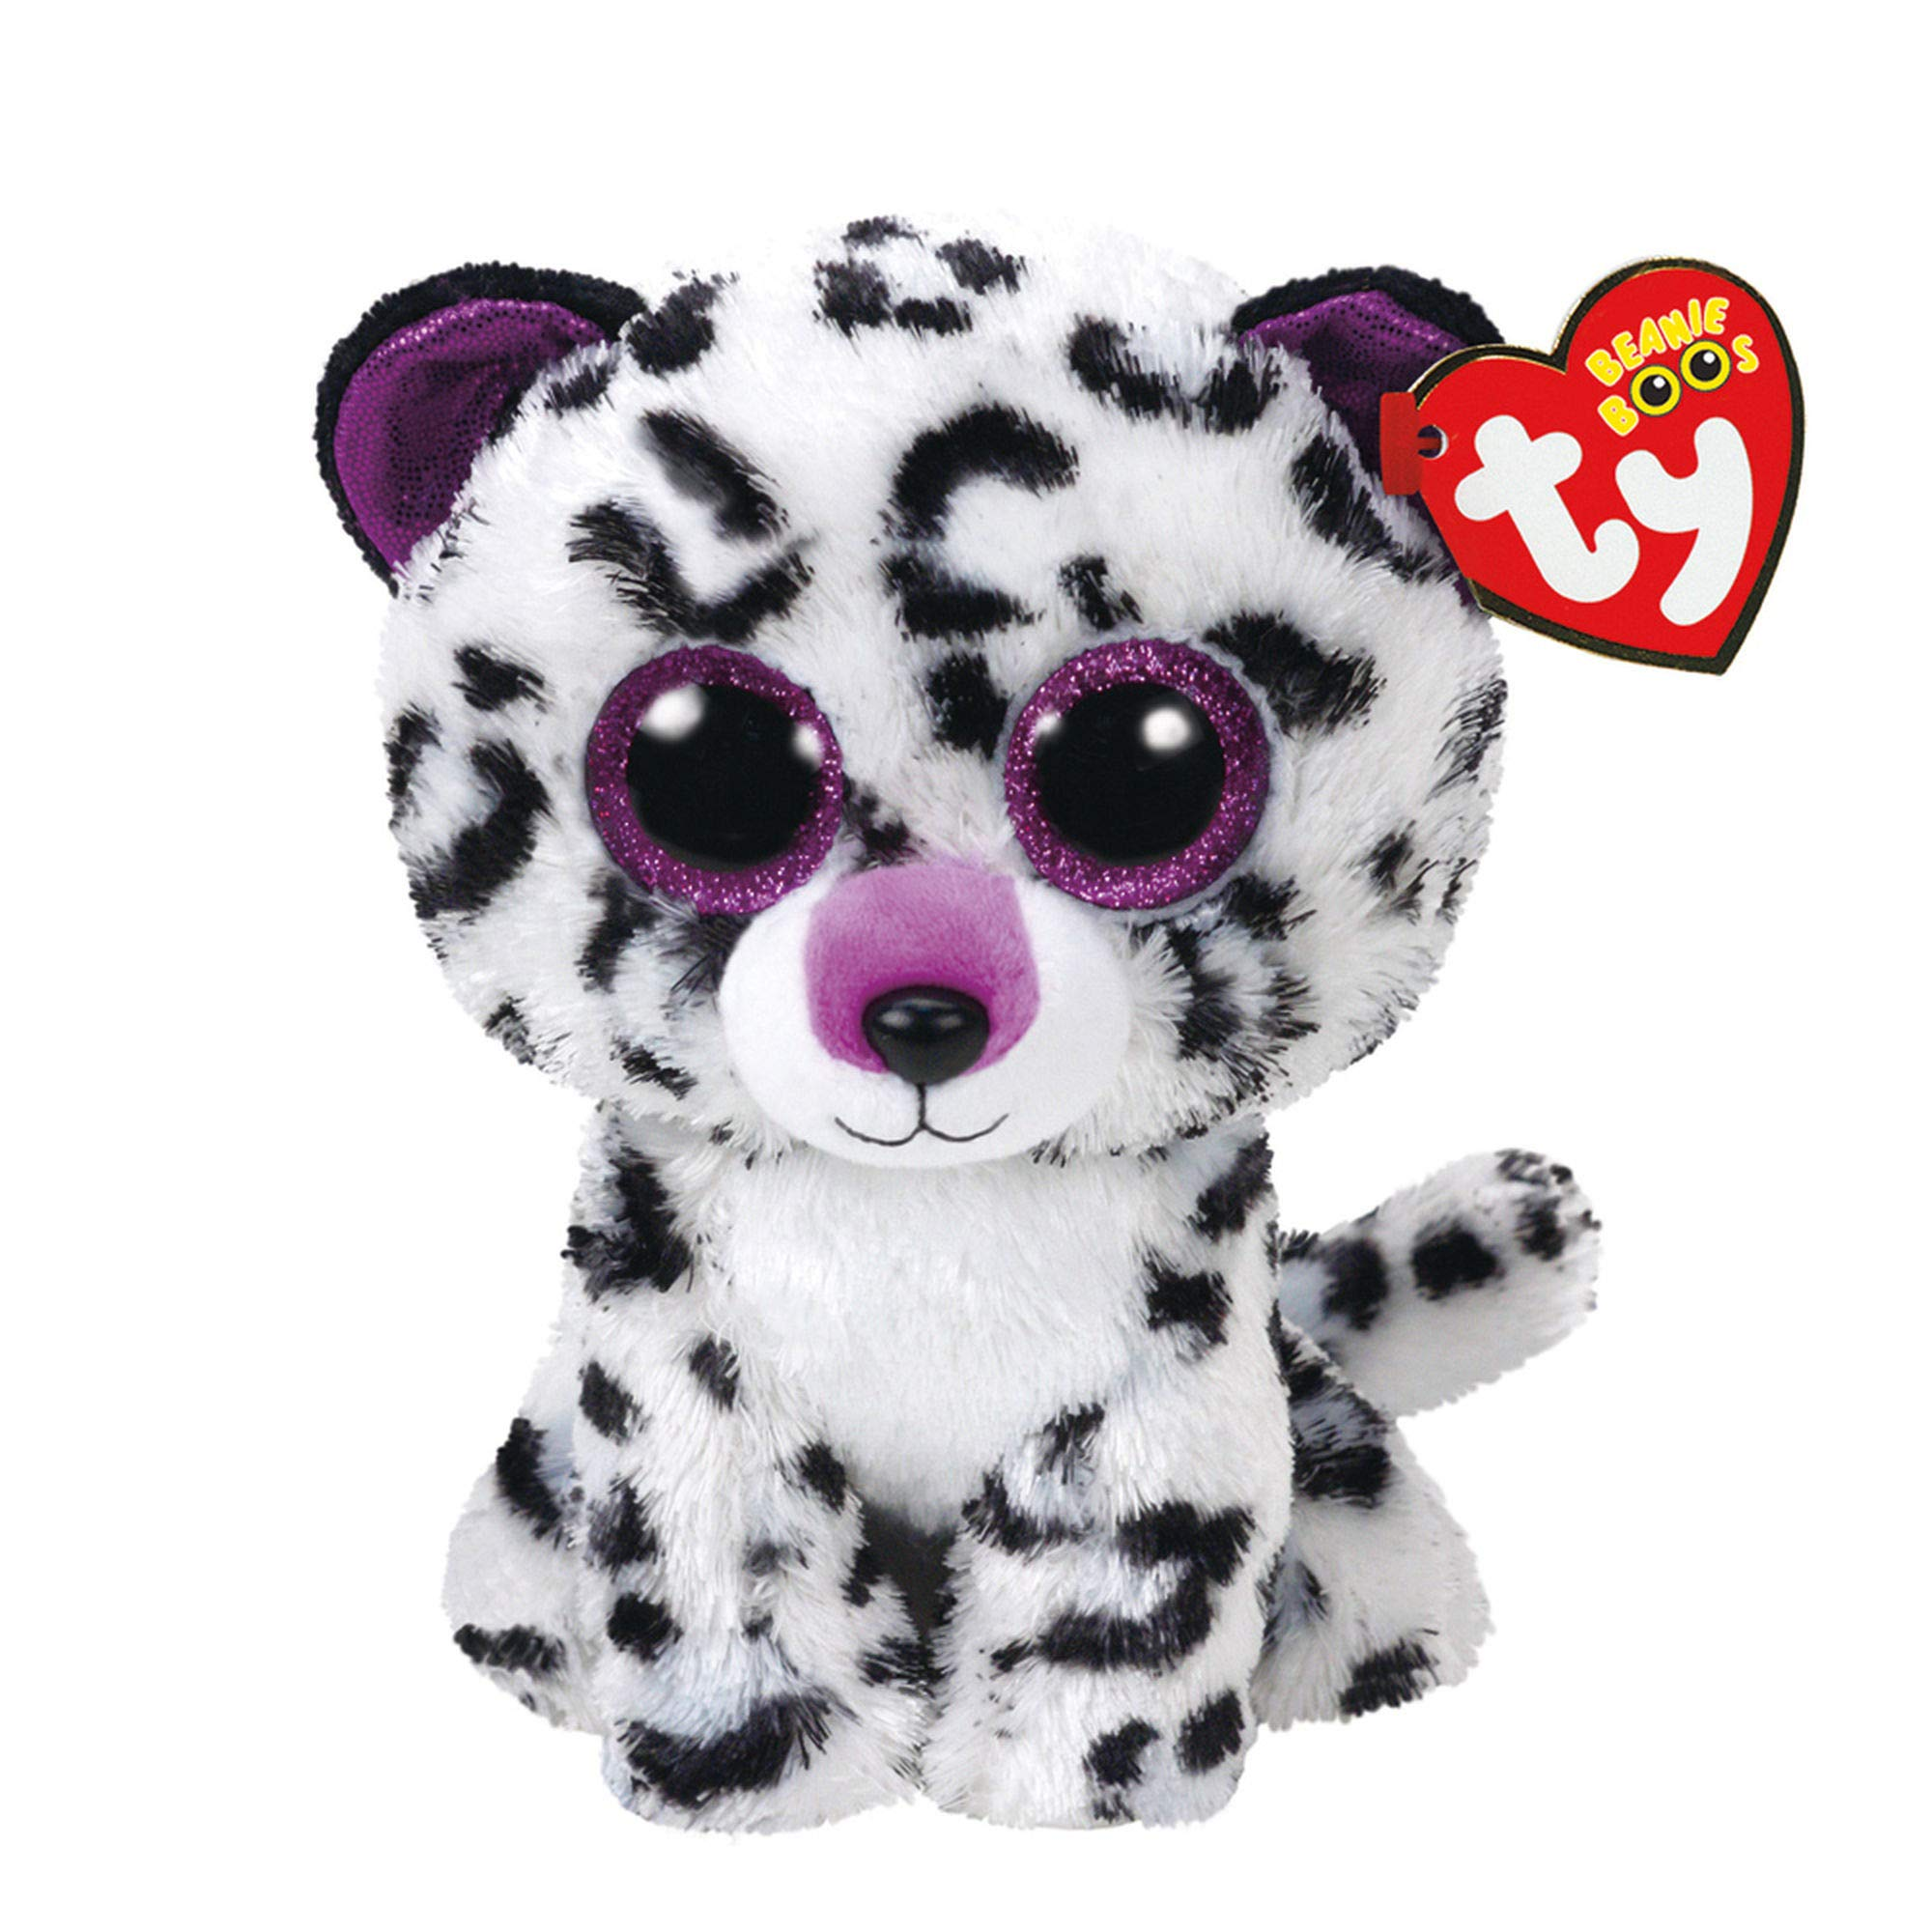 Ty Beanie Boos Violet - Leopard (Claire's Exclusive) by Ty